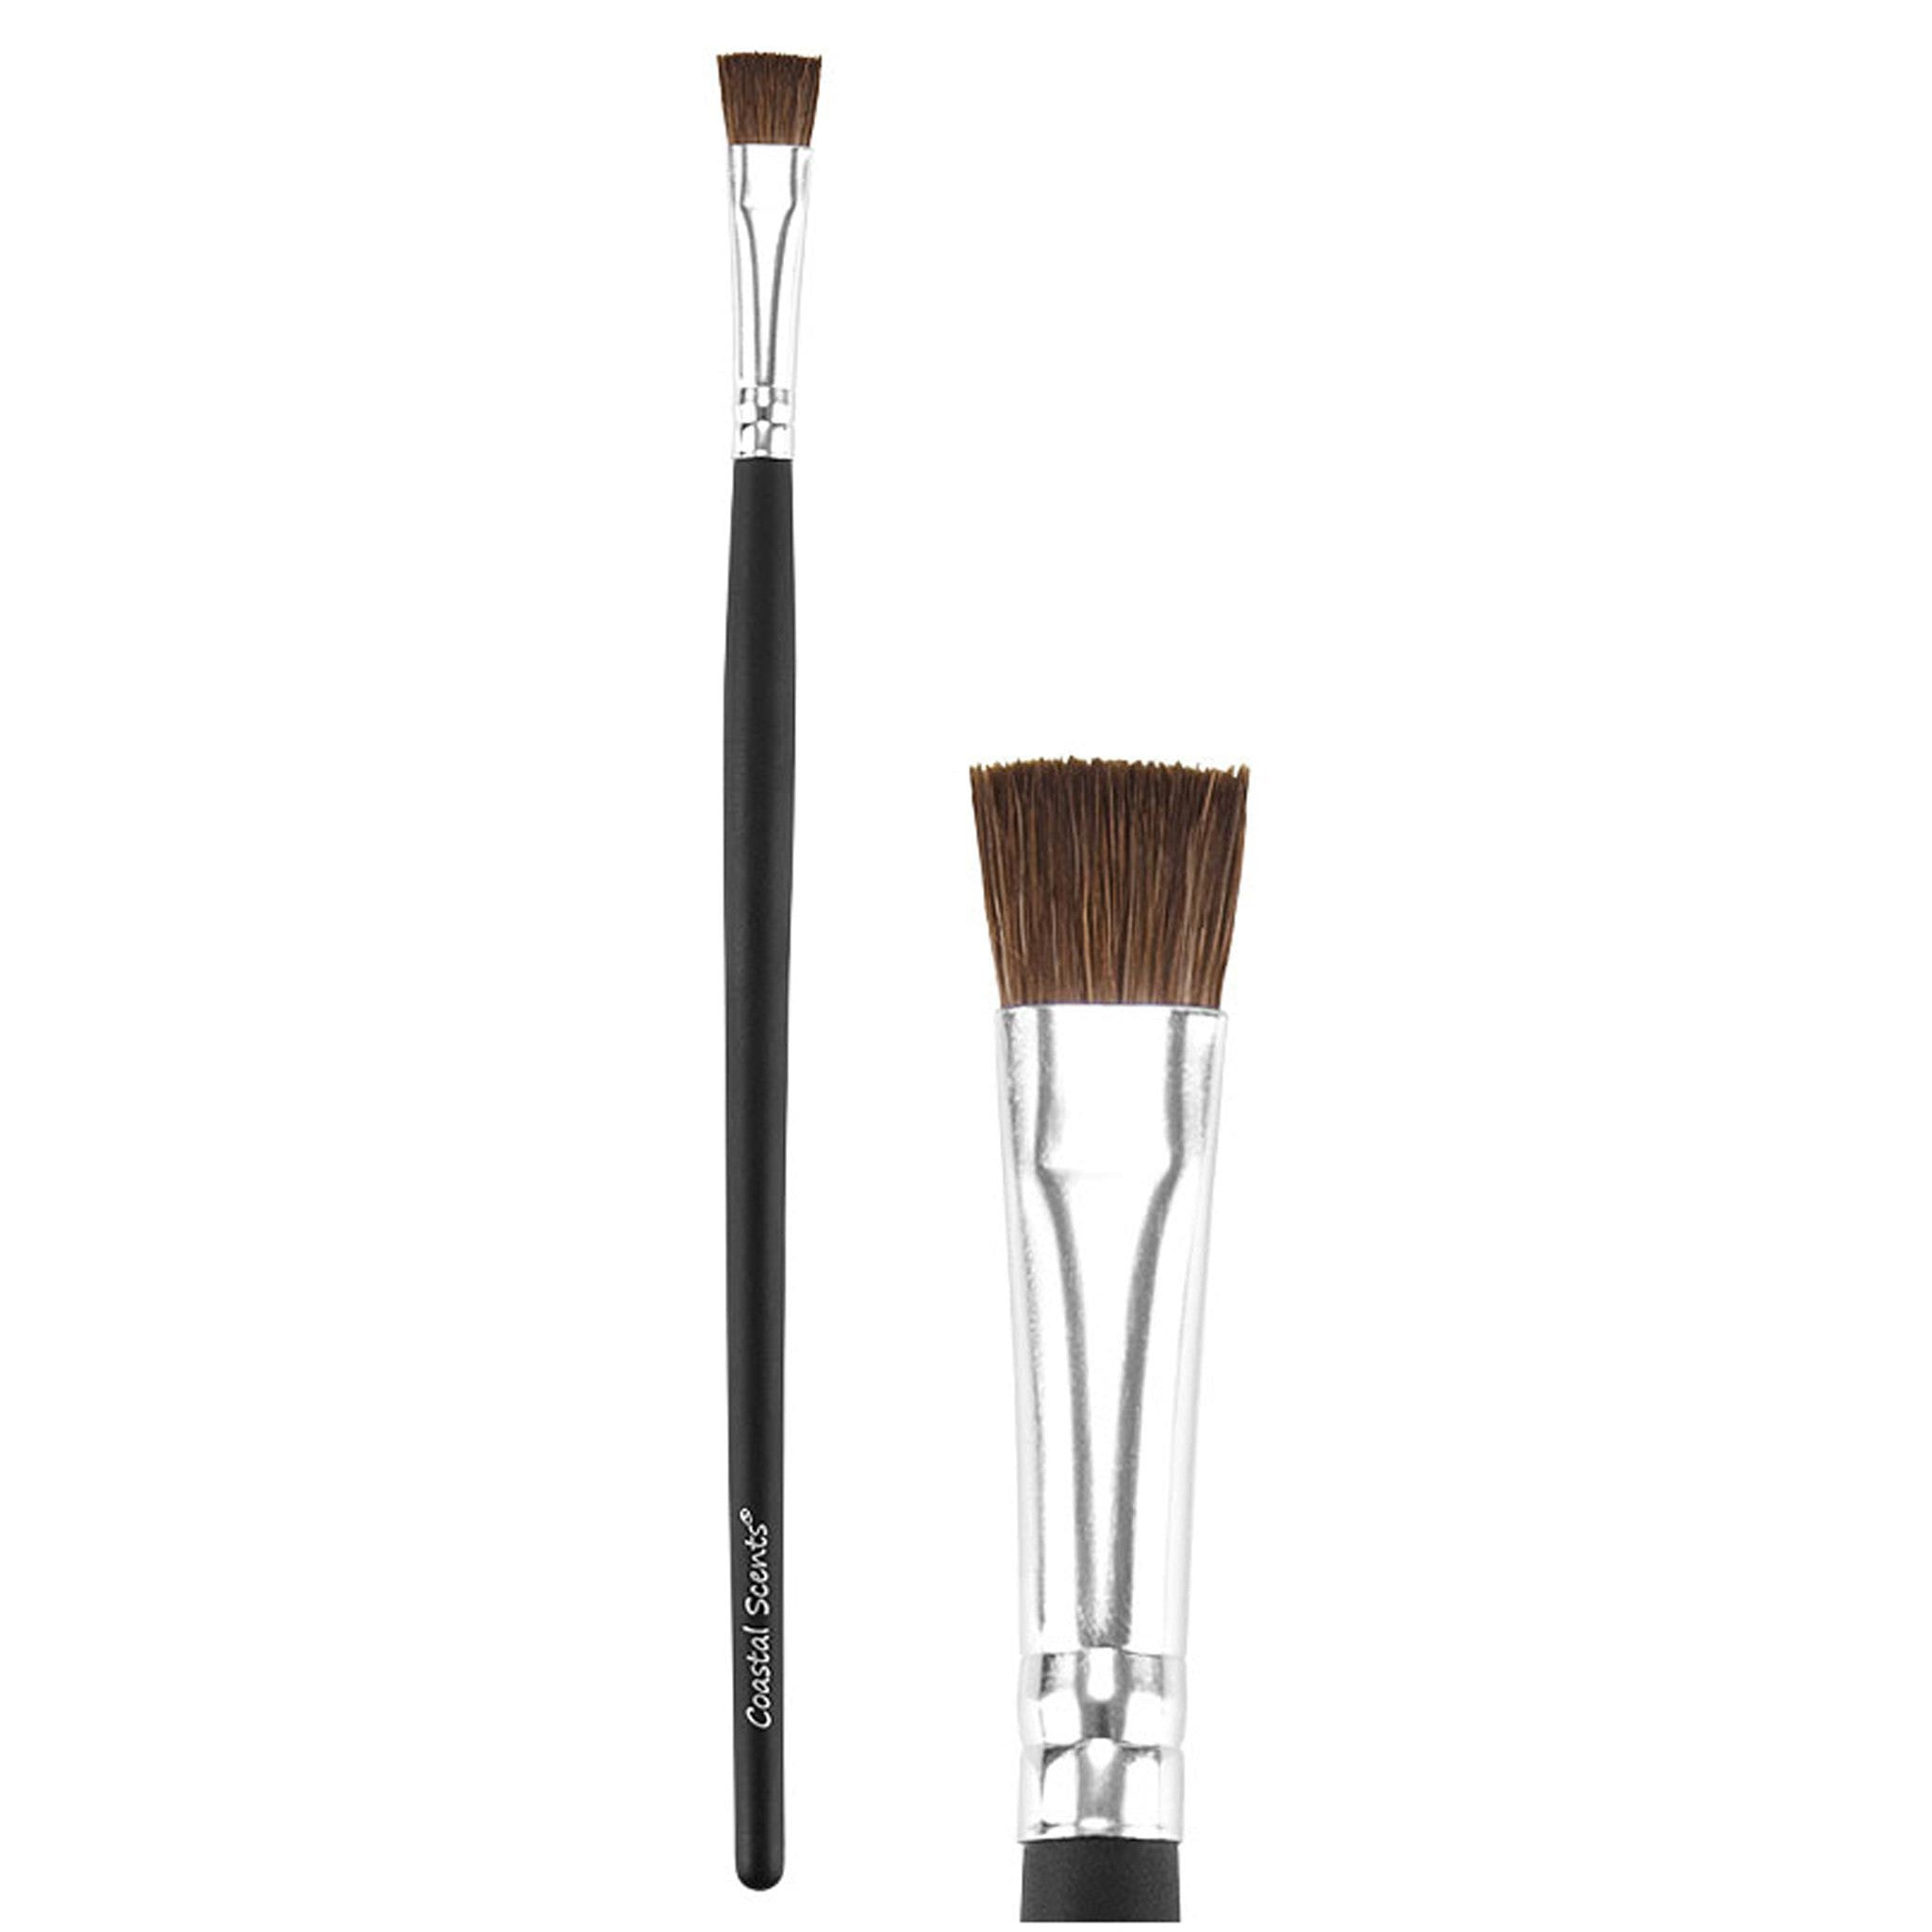 Coastal Scents coupon: Classic Flat Liner Brush Natural